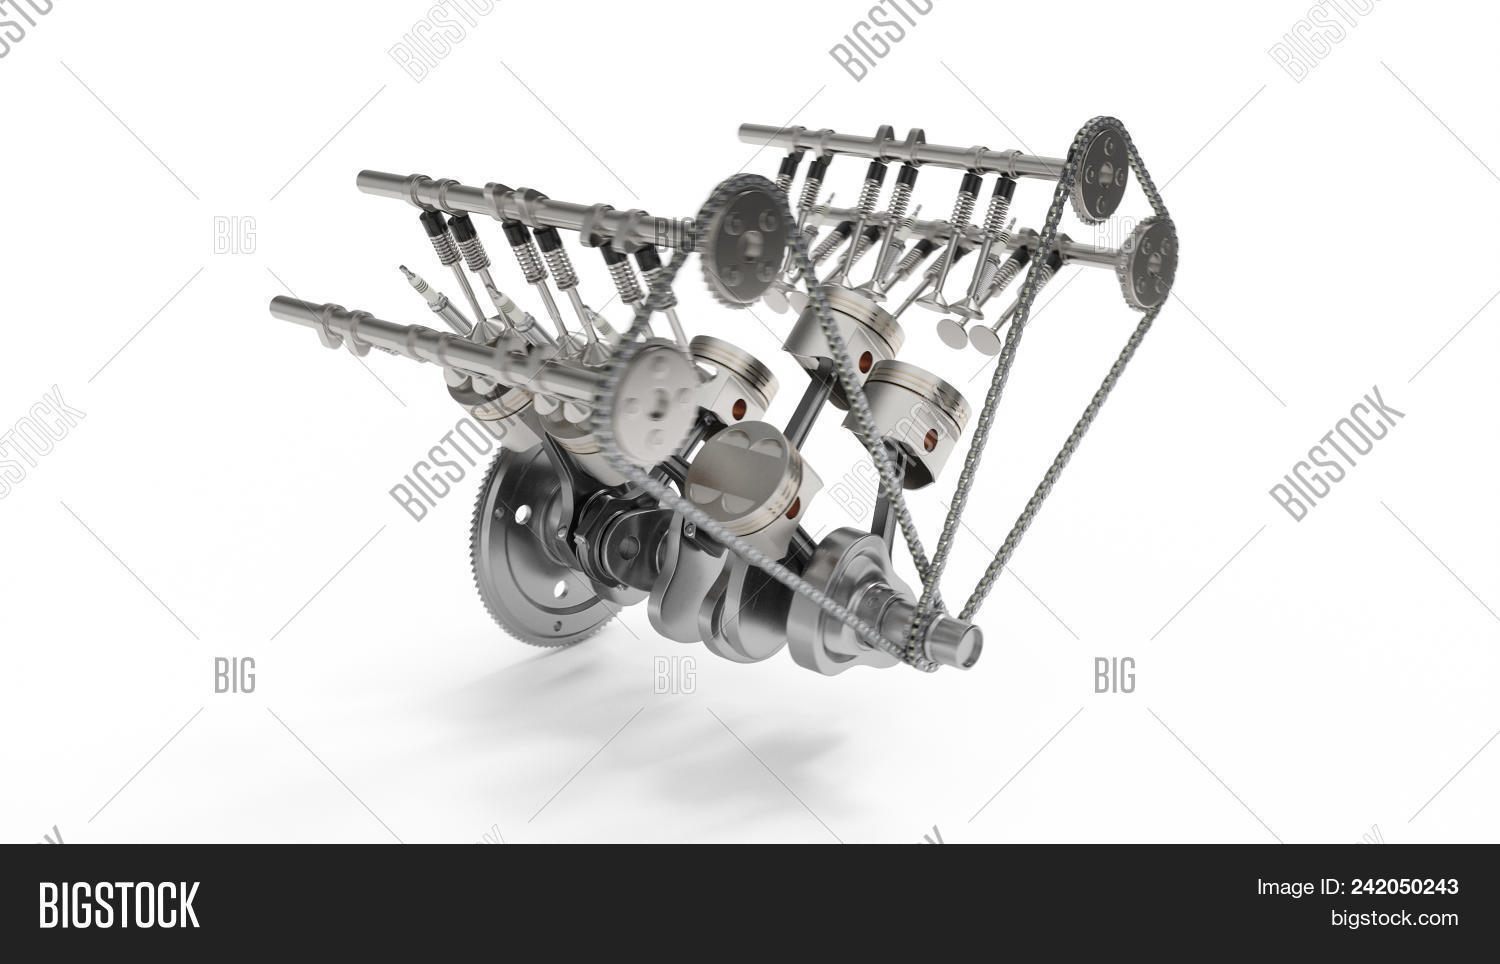 3d Rendering Internal Image Photo Free Trial Bigstock Combustion Engine System Diagram Of An Parts Crankshaft Pistons Fuel